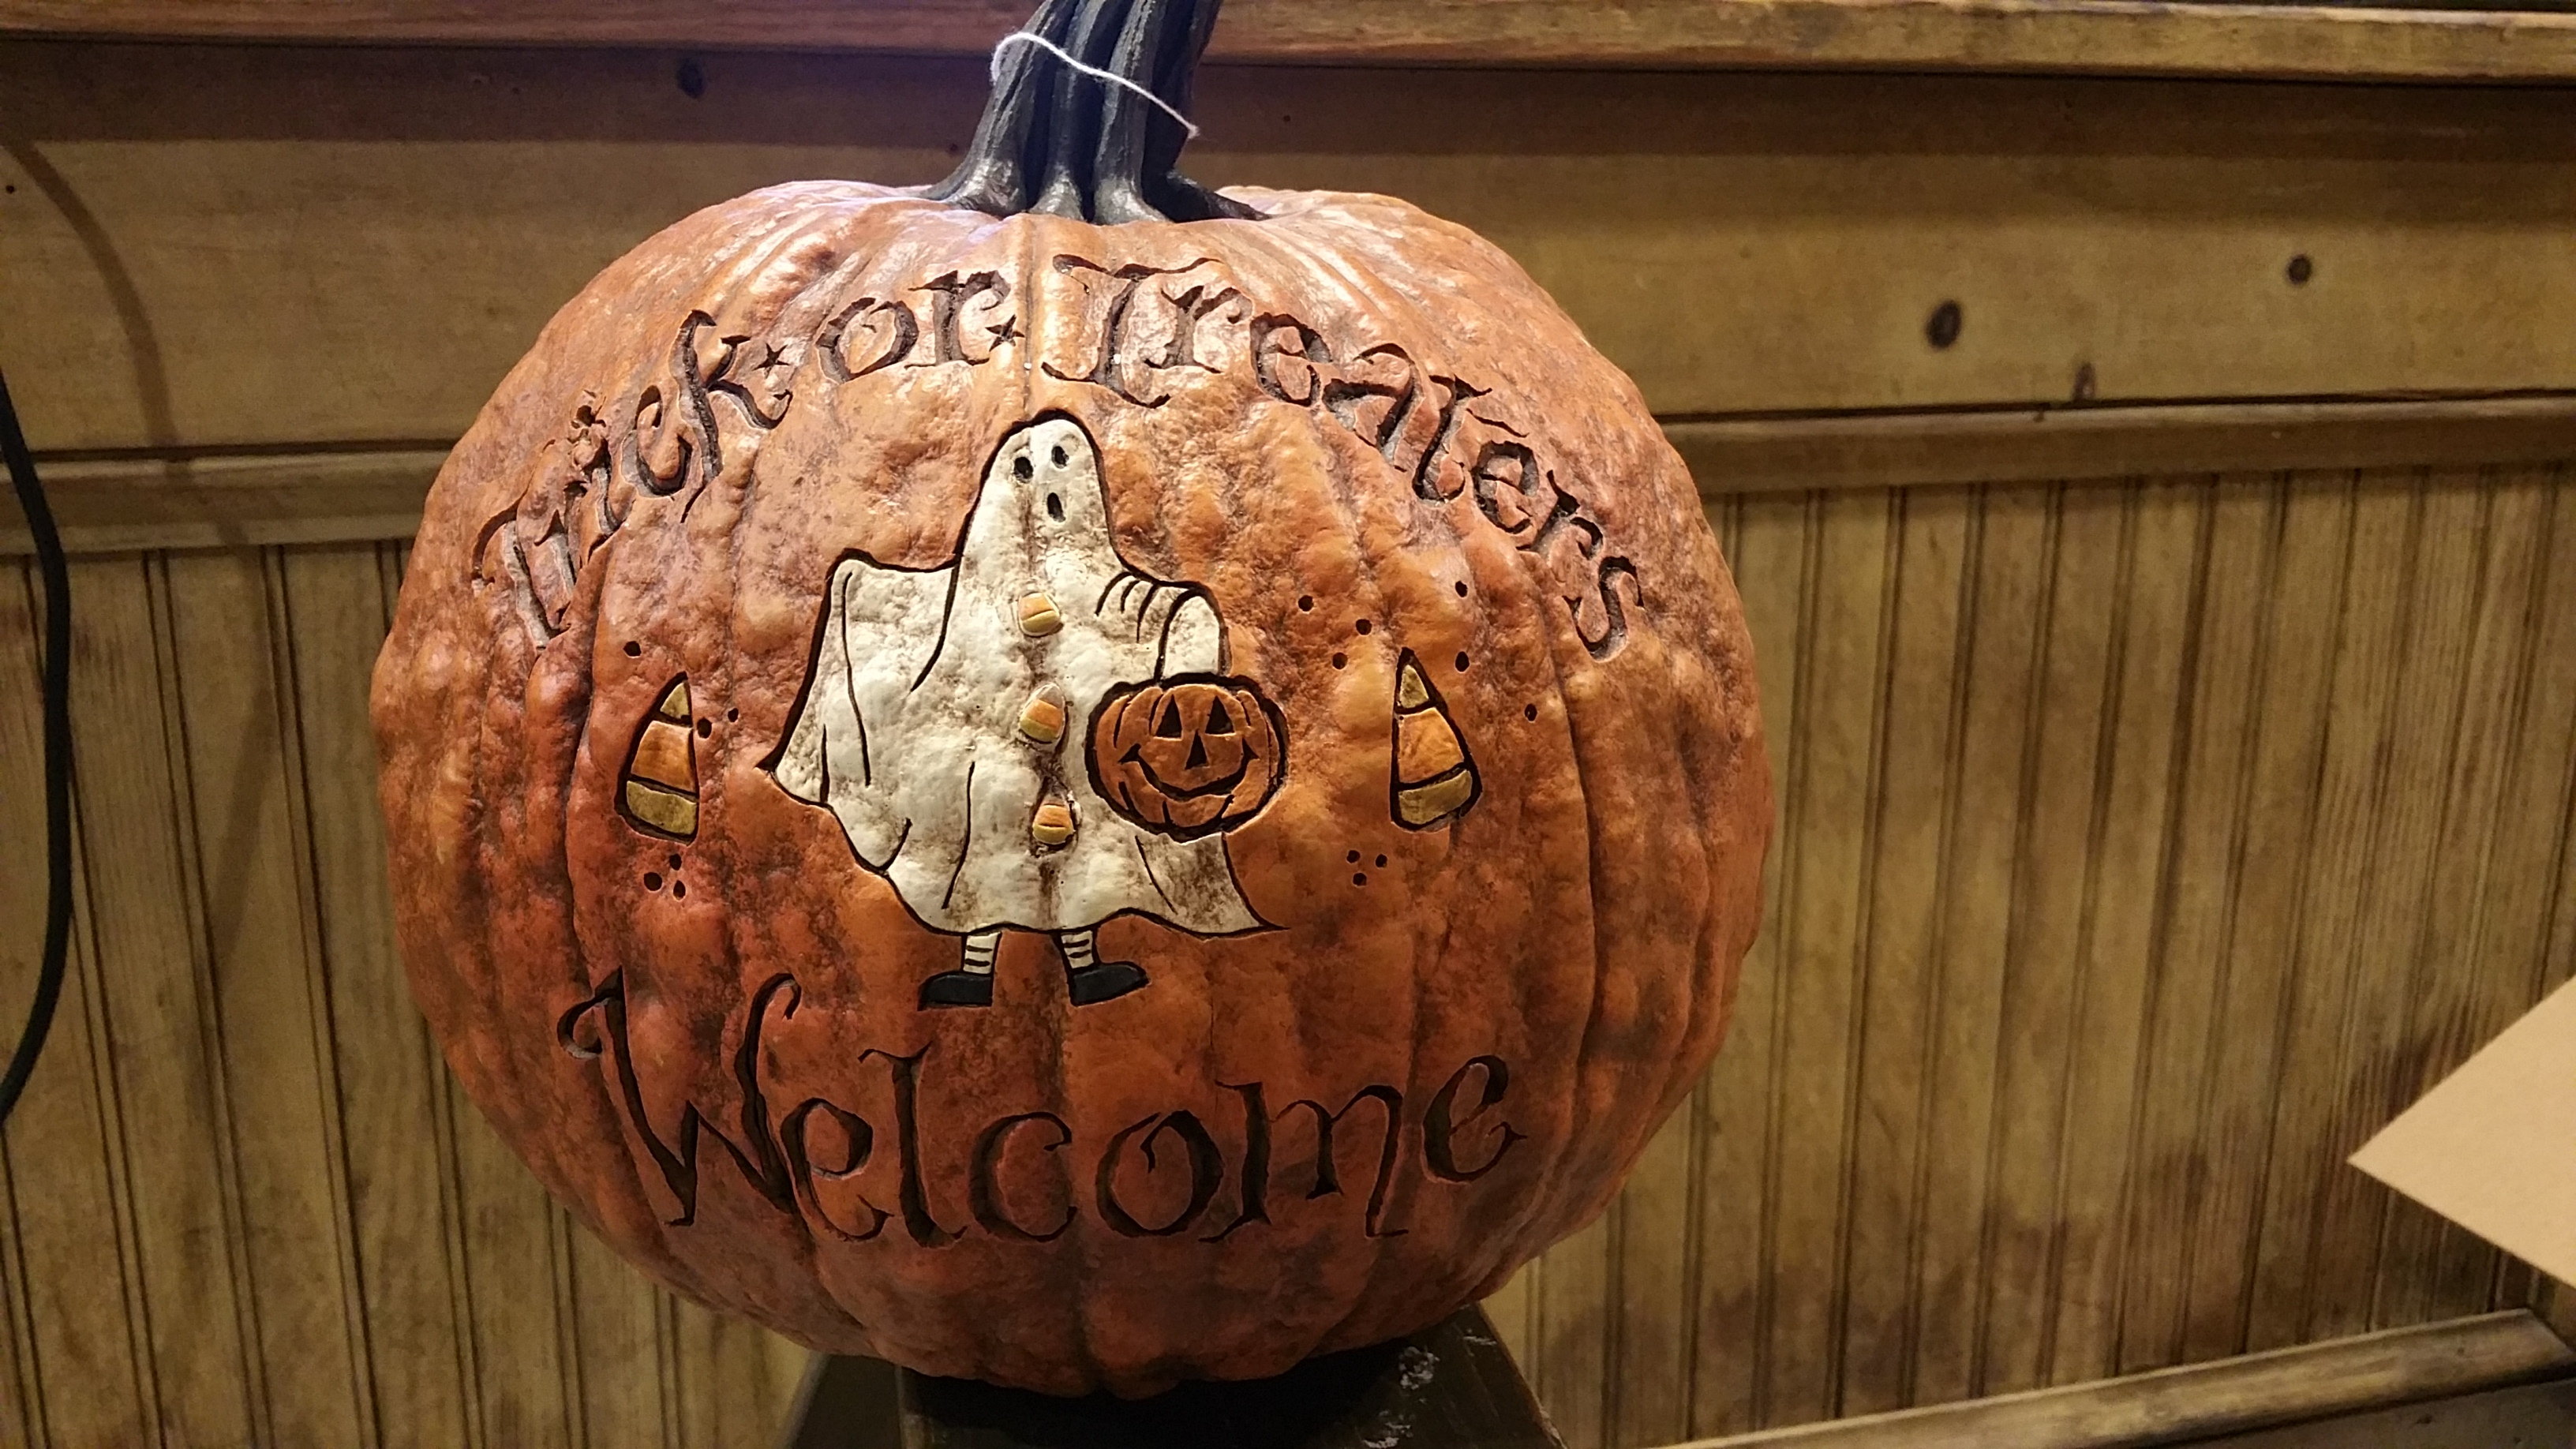 ITrick or Treat night at the Farmers Market in Kutztown